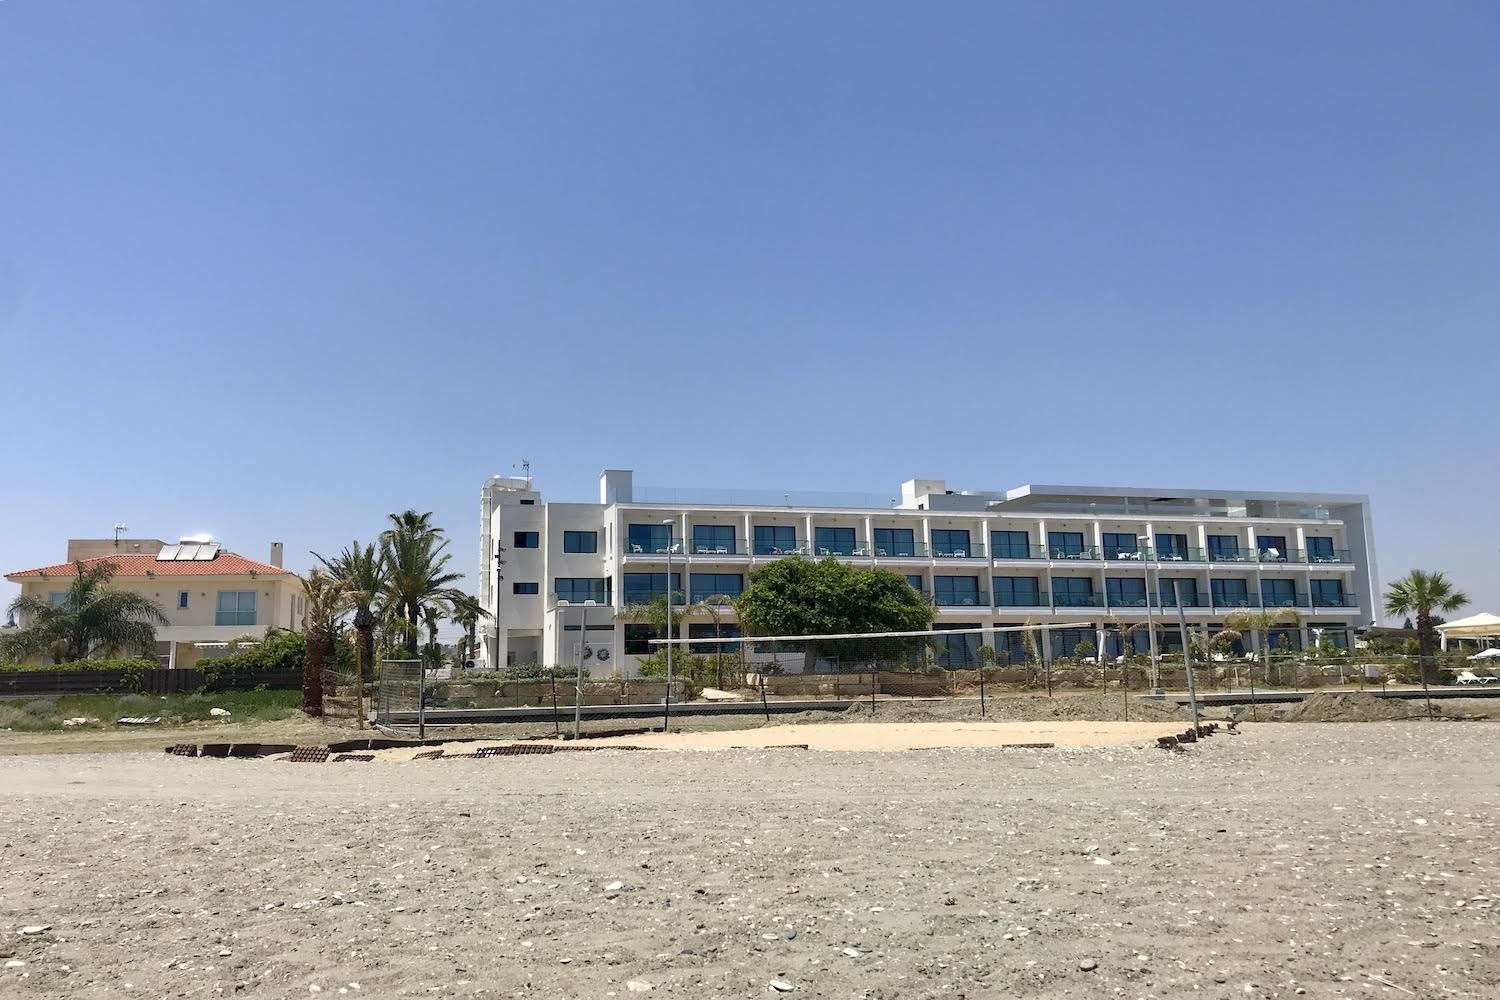 hotel on the beach in larnaka cyprus example image 1